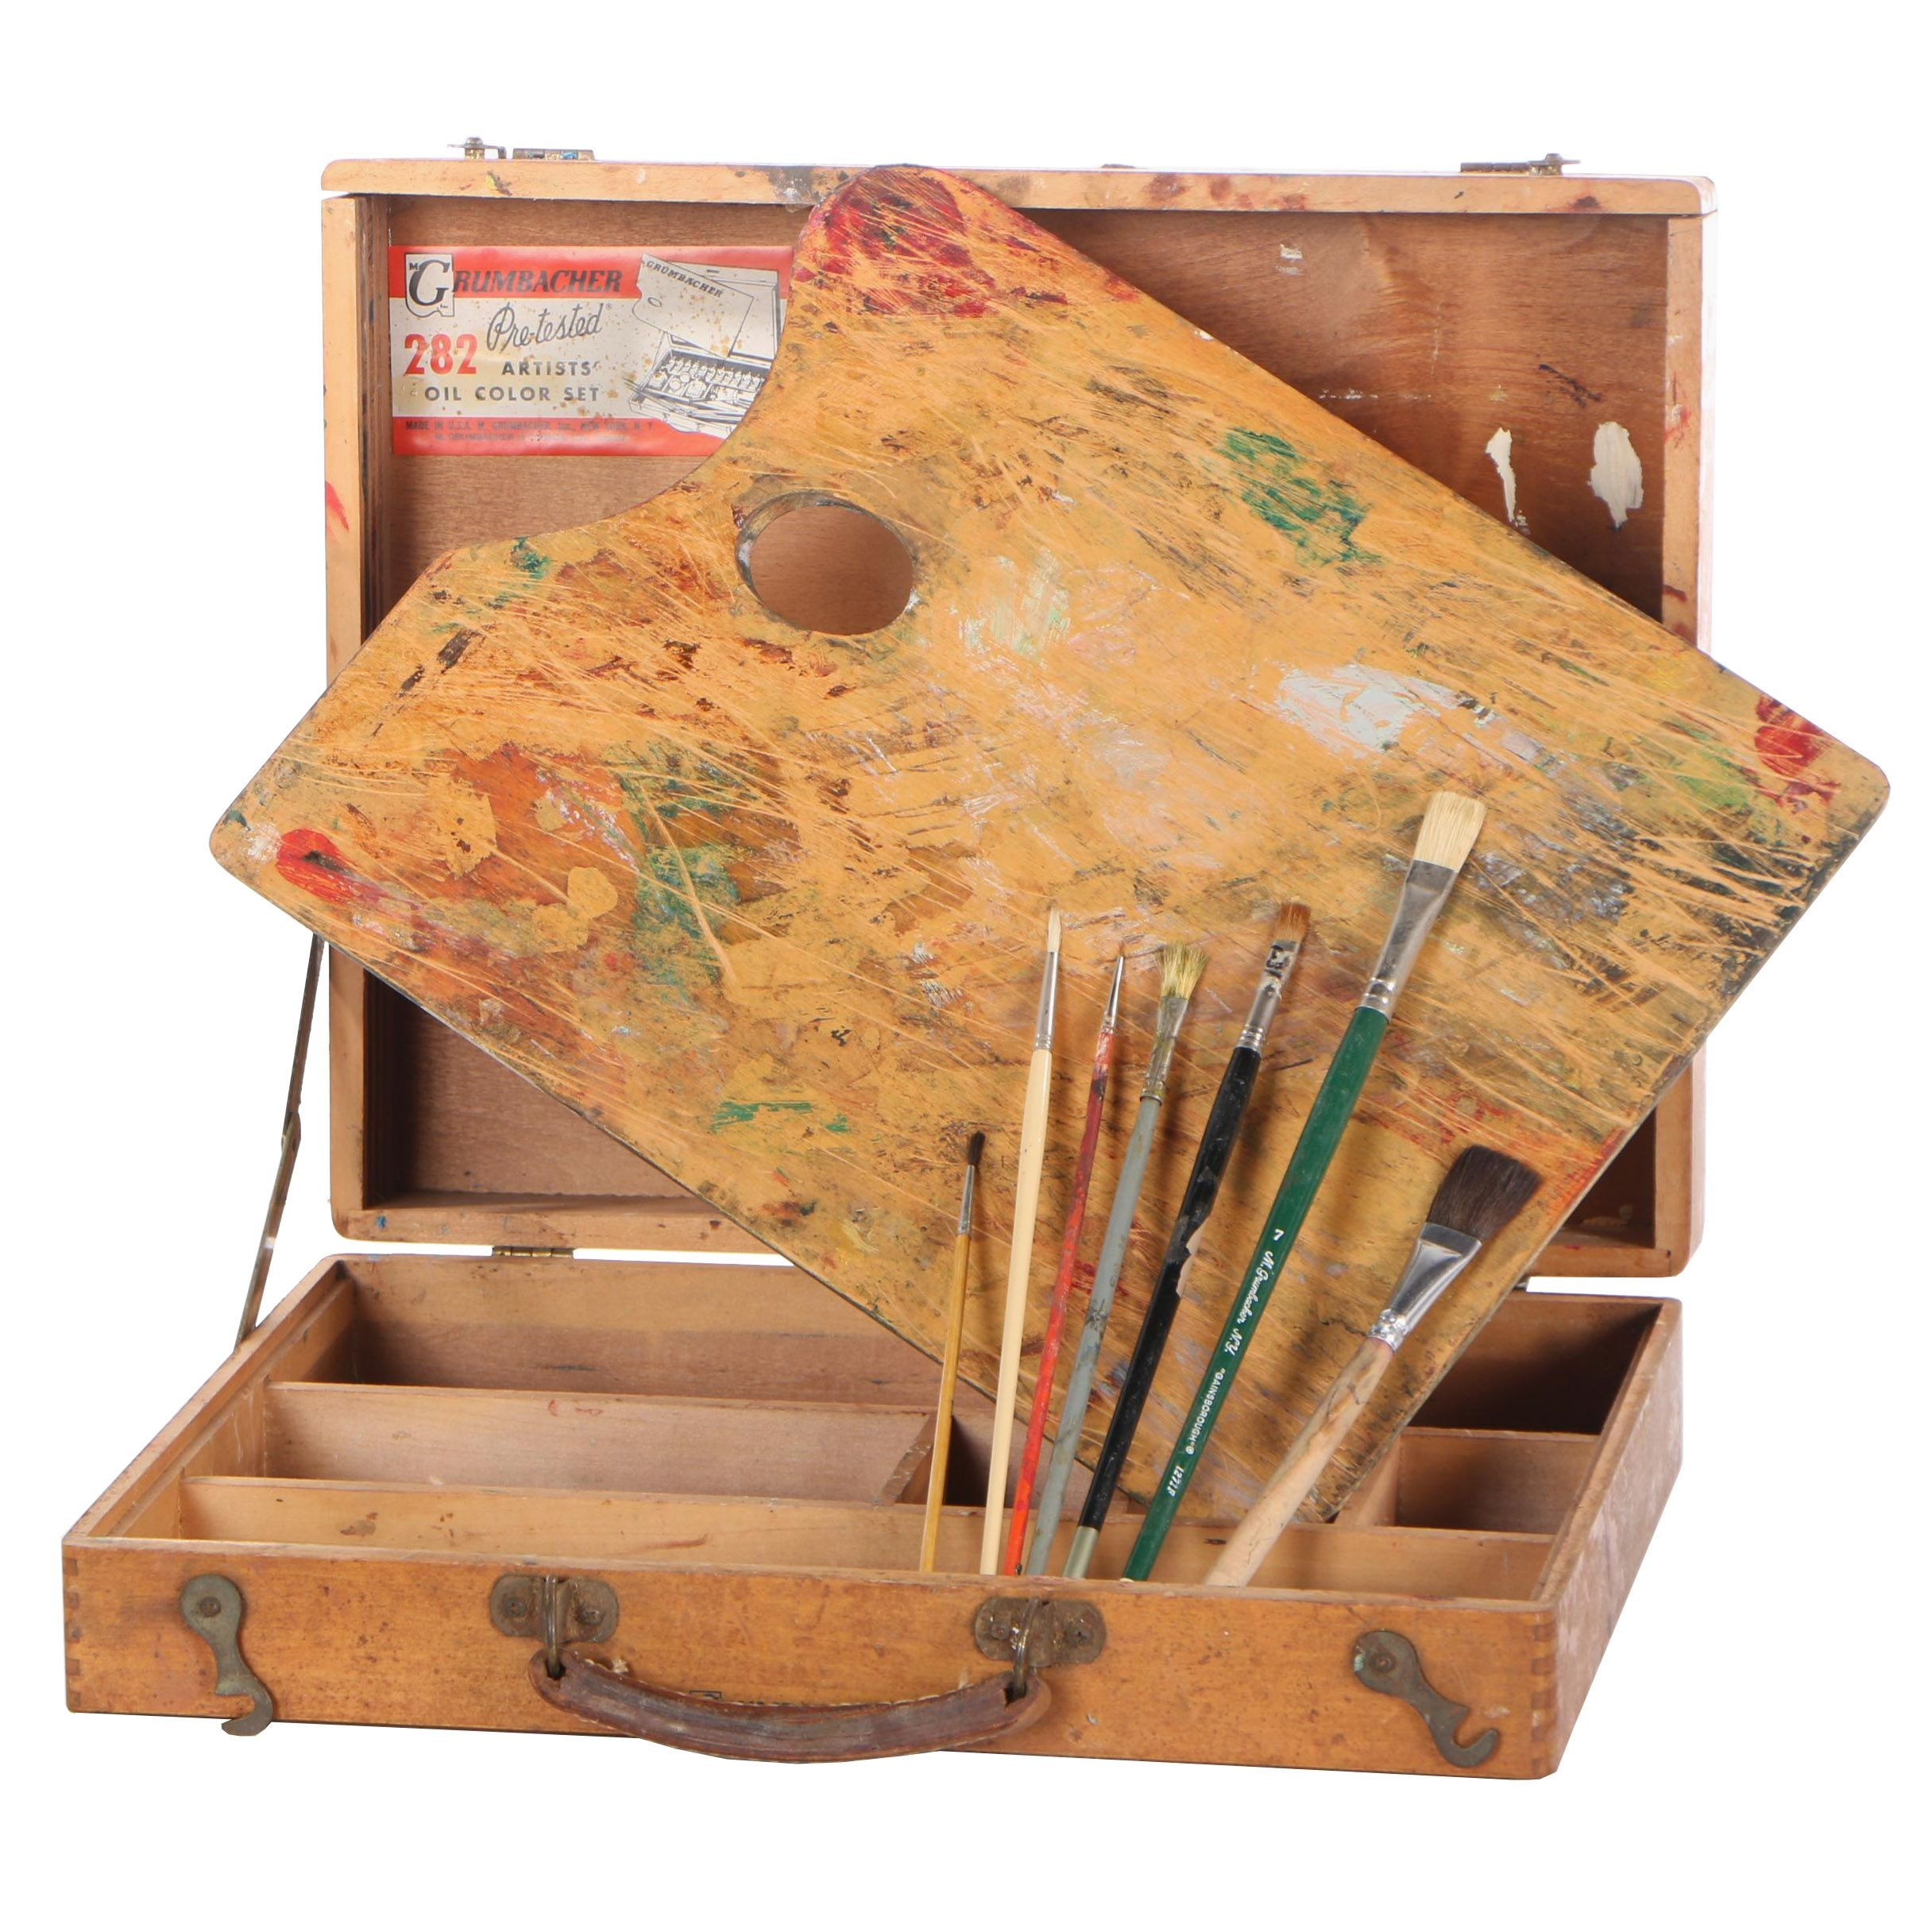 Vintage Grumbacher Artist Paint Box, Brushes and Palette